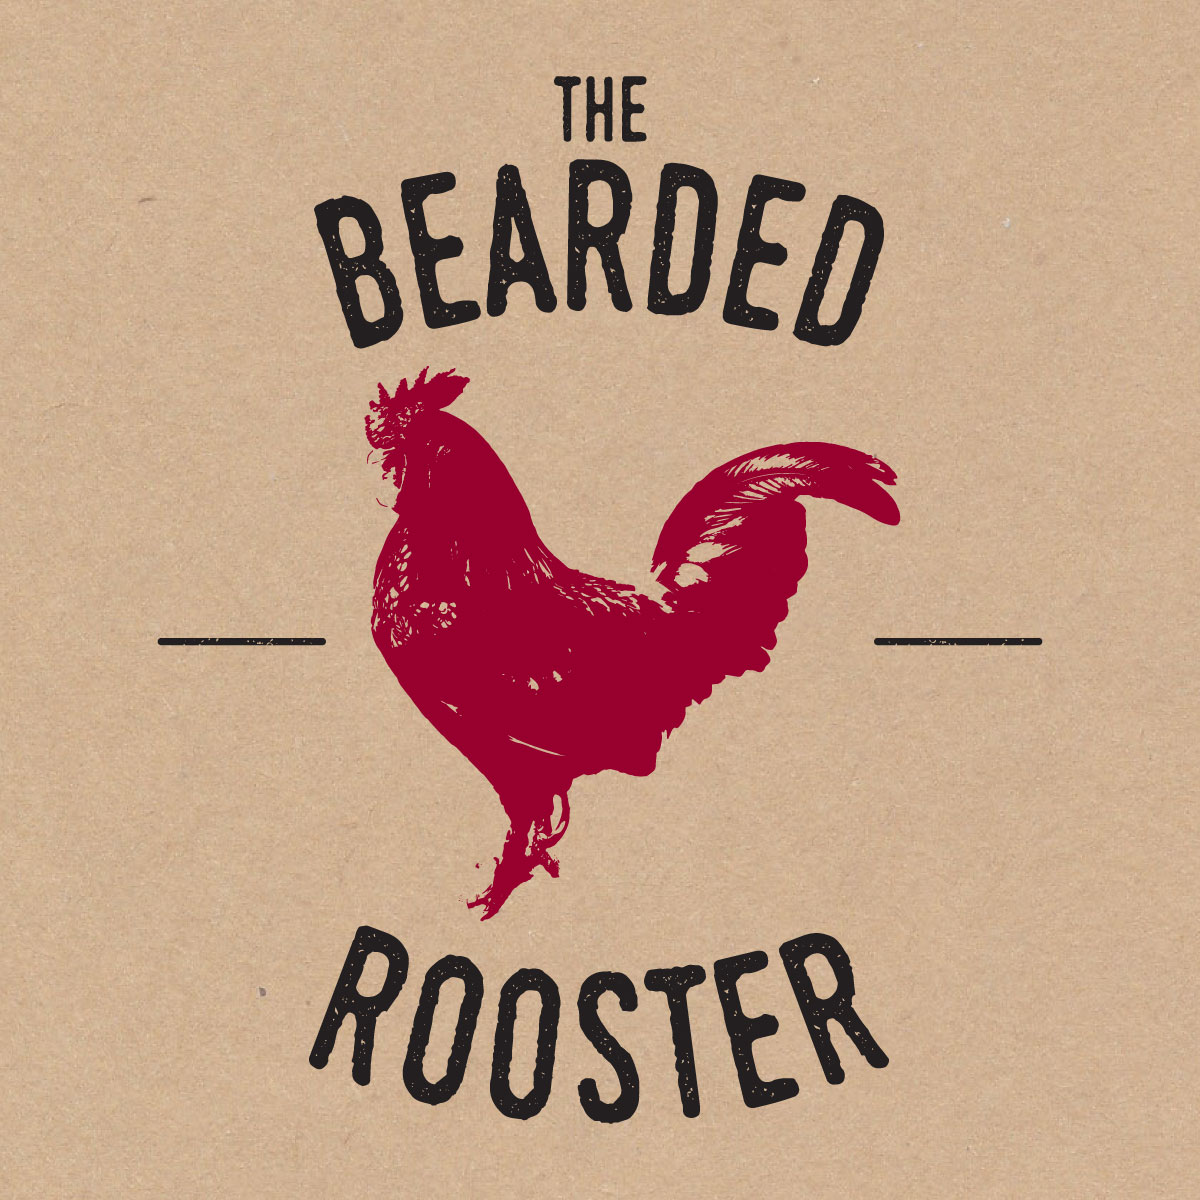 The Bearded Rooster